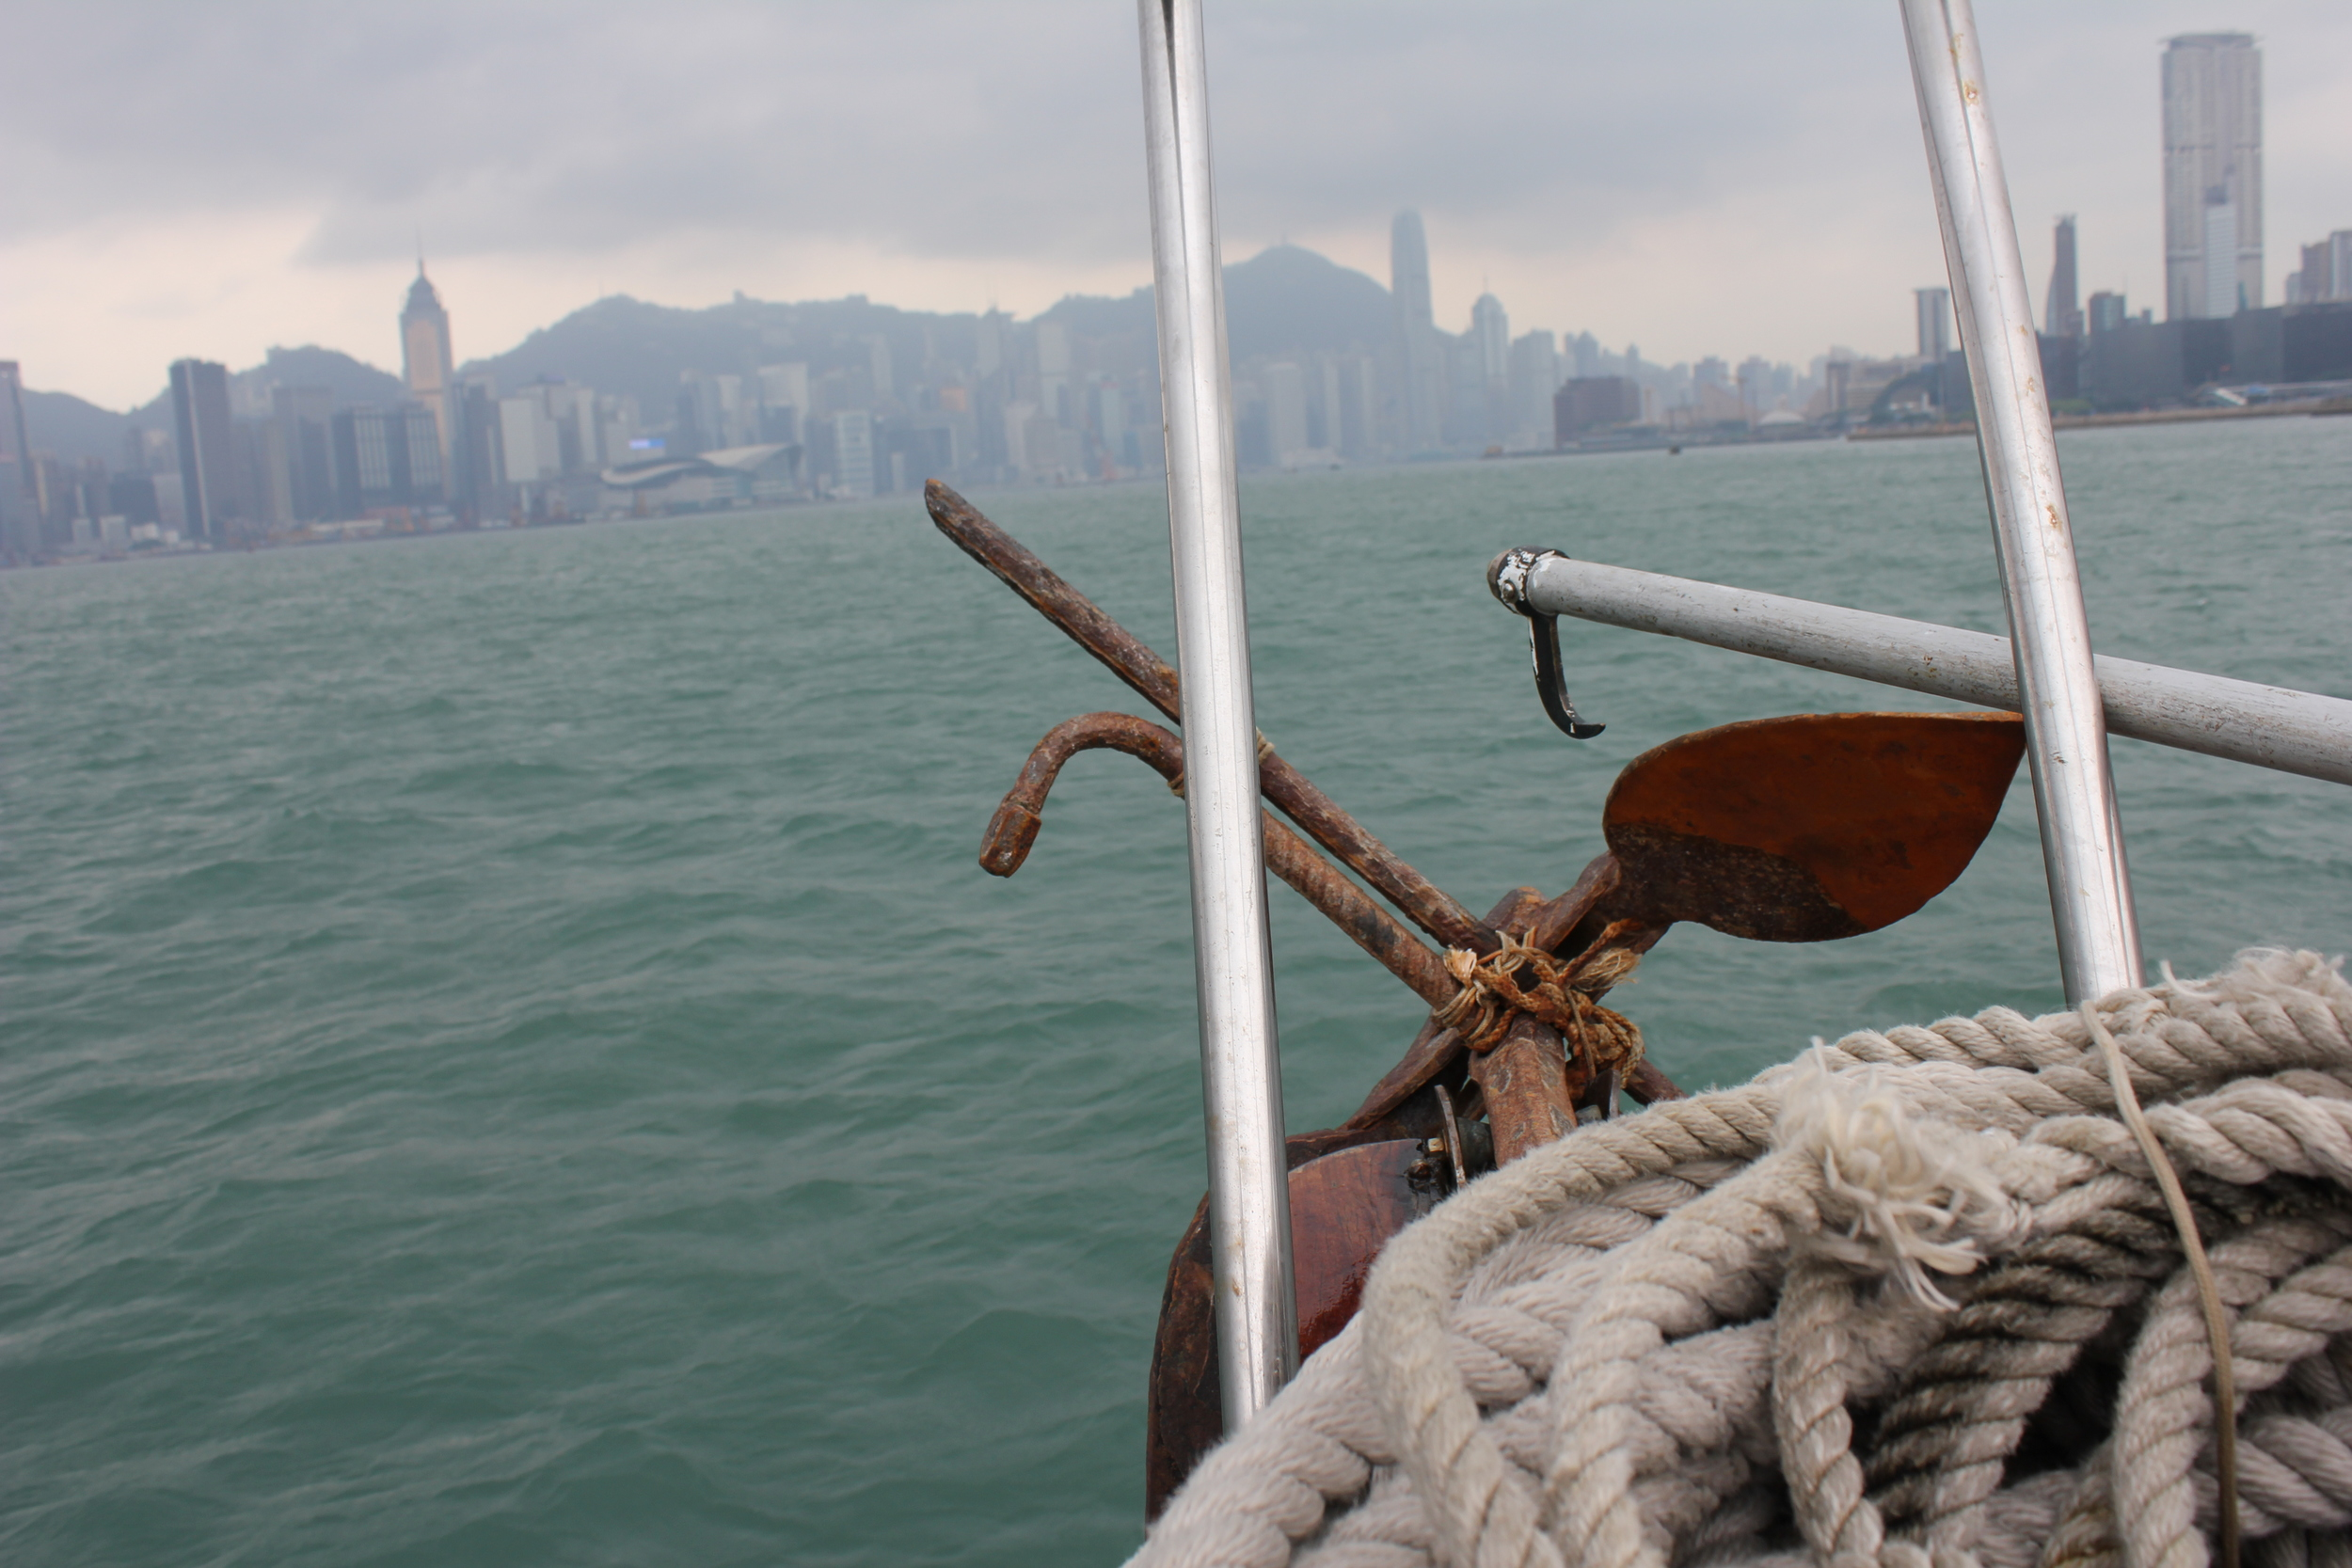 Hong Kong, as seen from the Harbor.